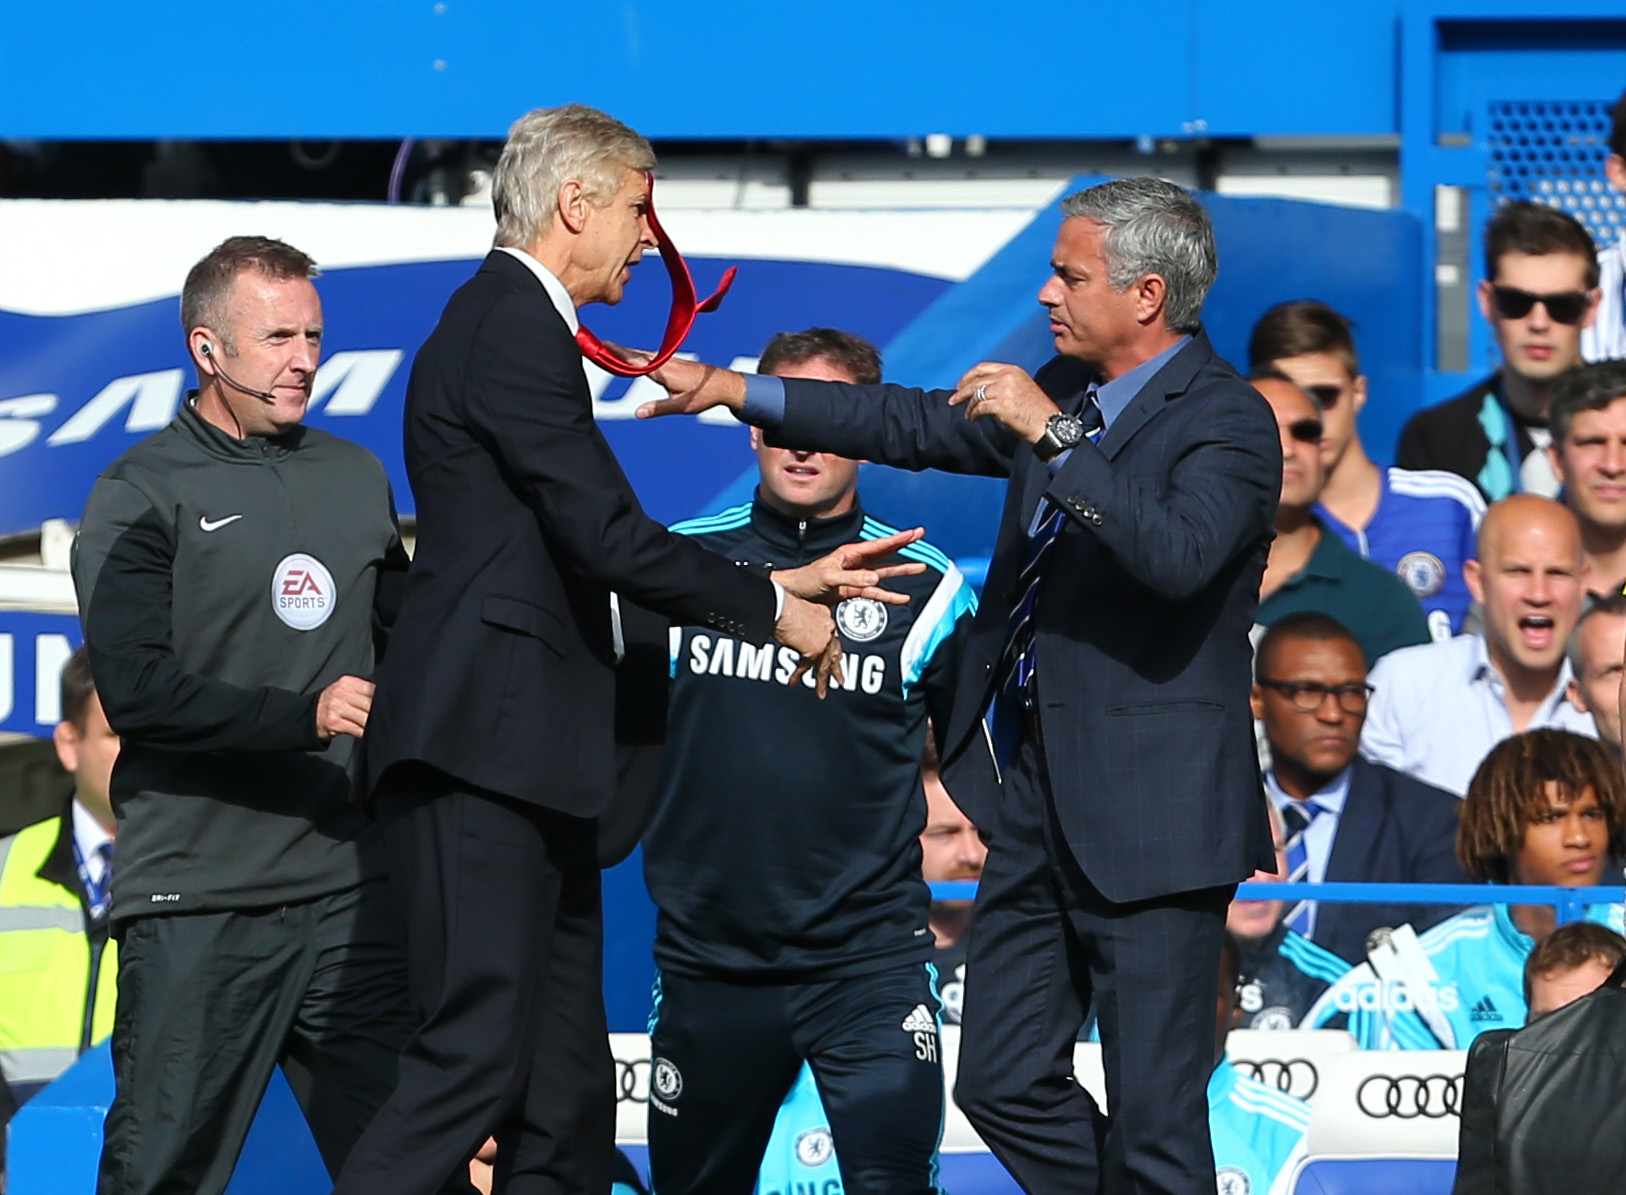 Jose Mourinho aims another thinly veiled jibe in Arsene Wenger's direction